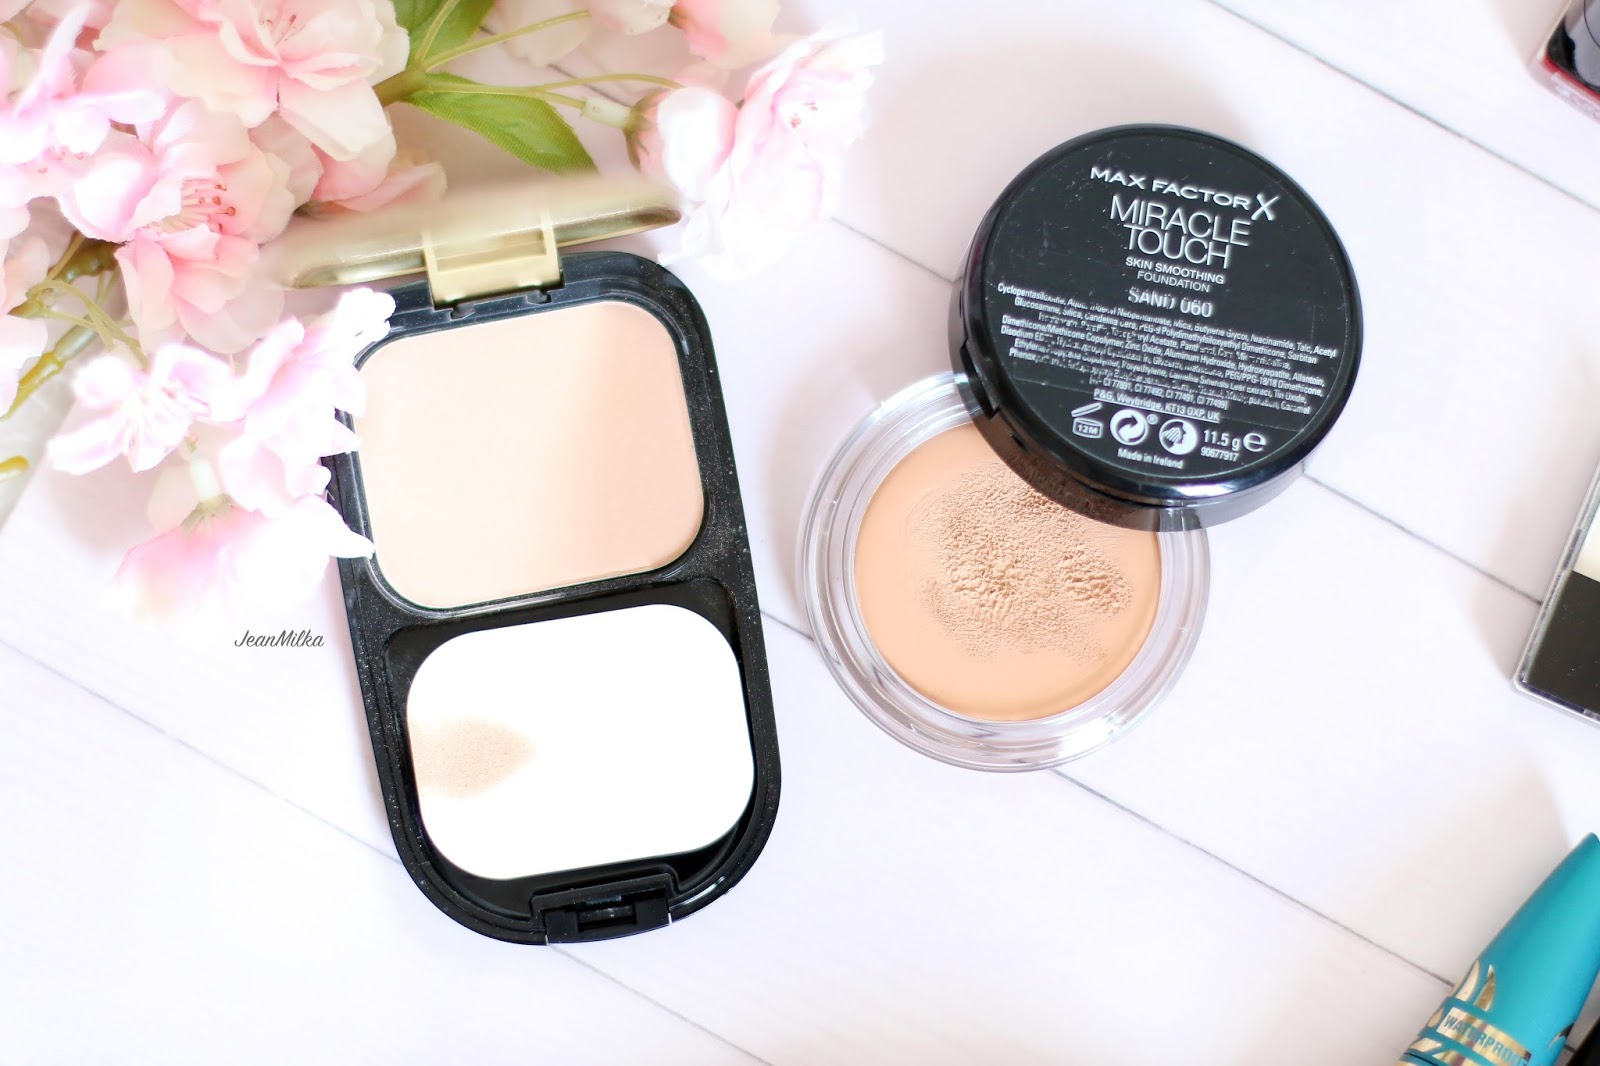 review, product review, max factor, facefinity compact foundation, foundation, drugstore, makeup